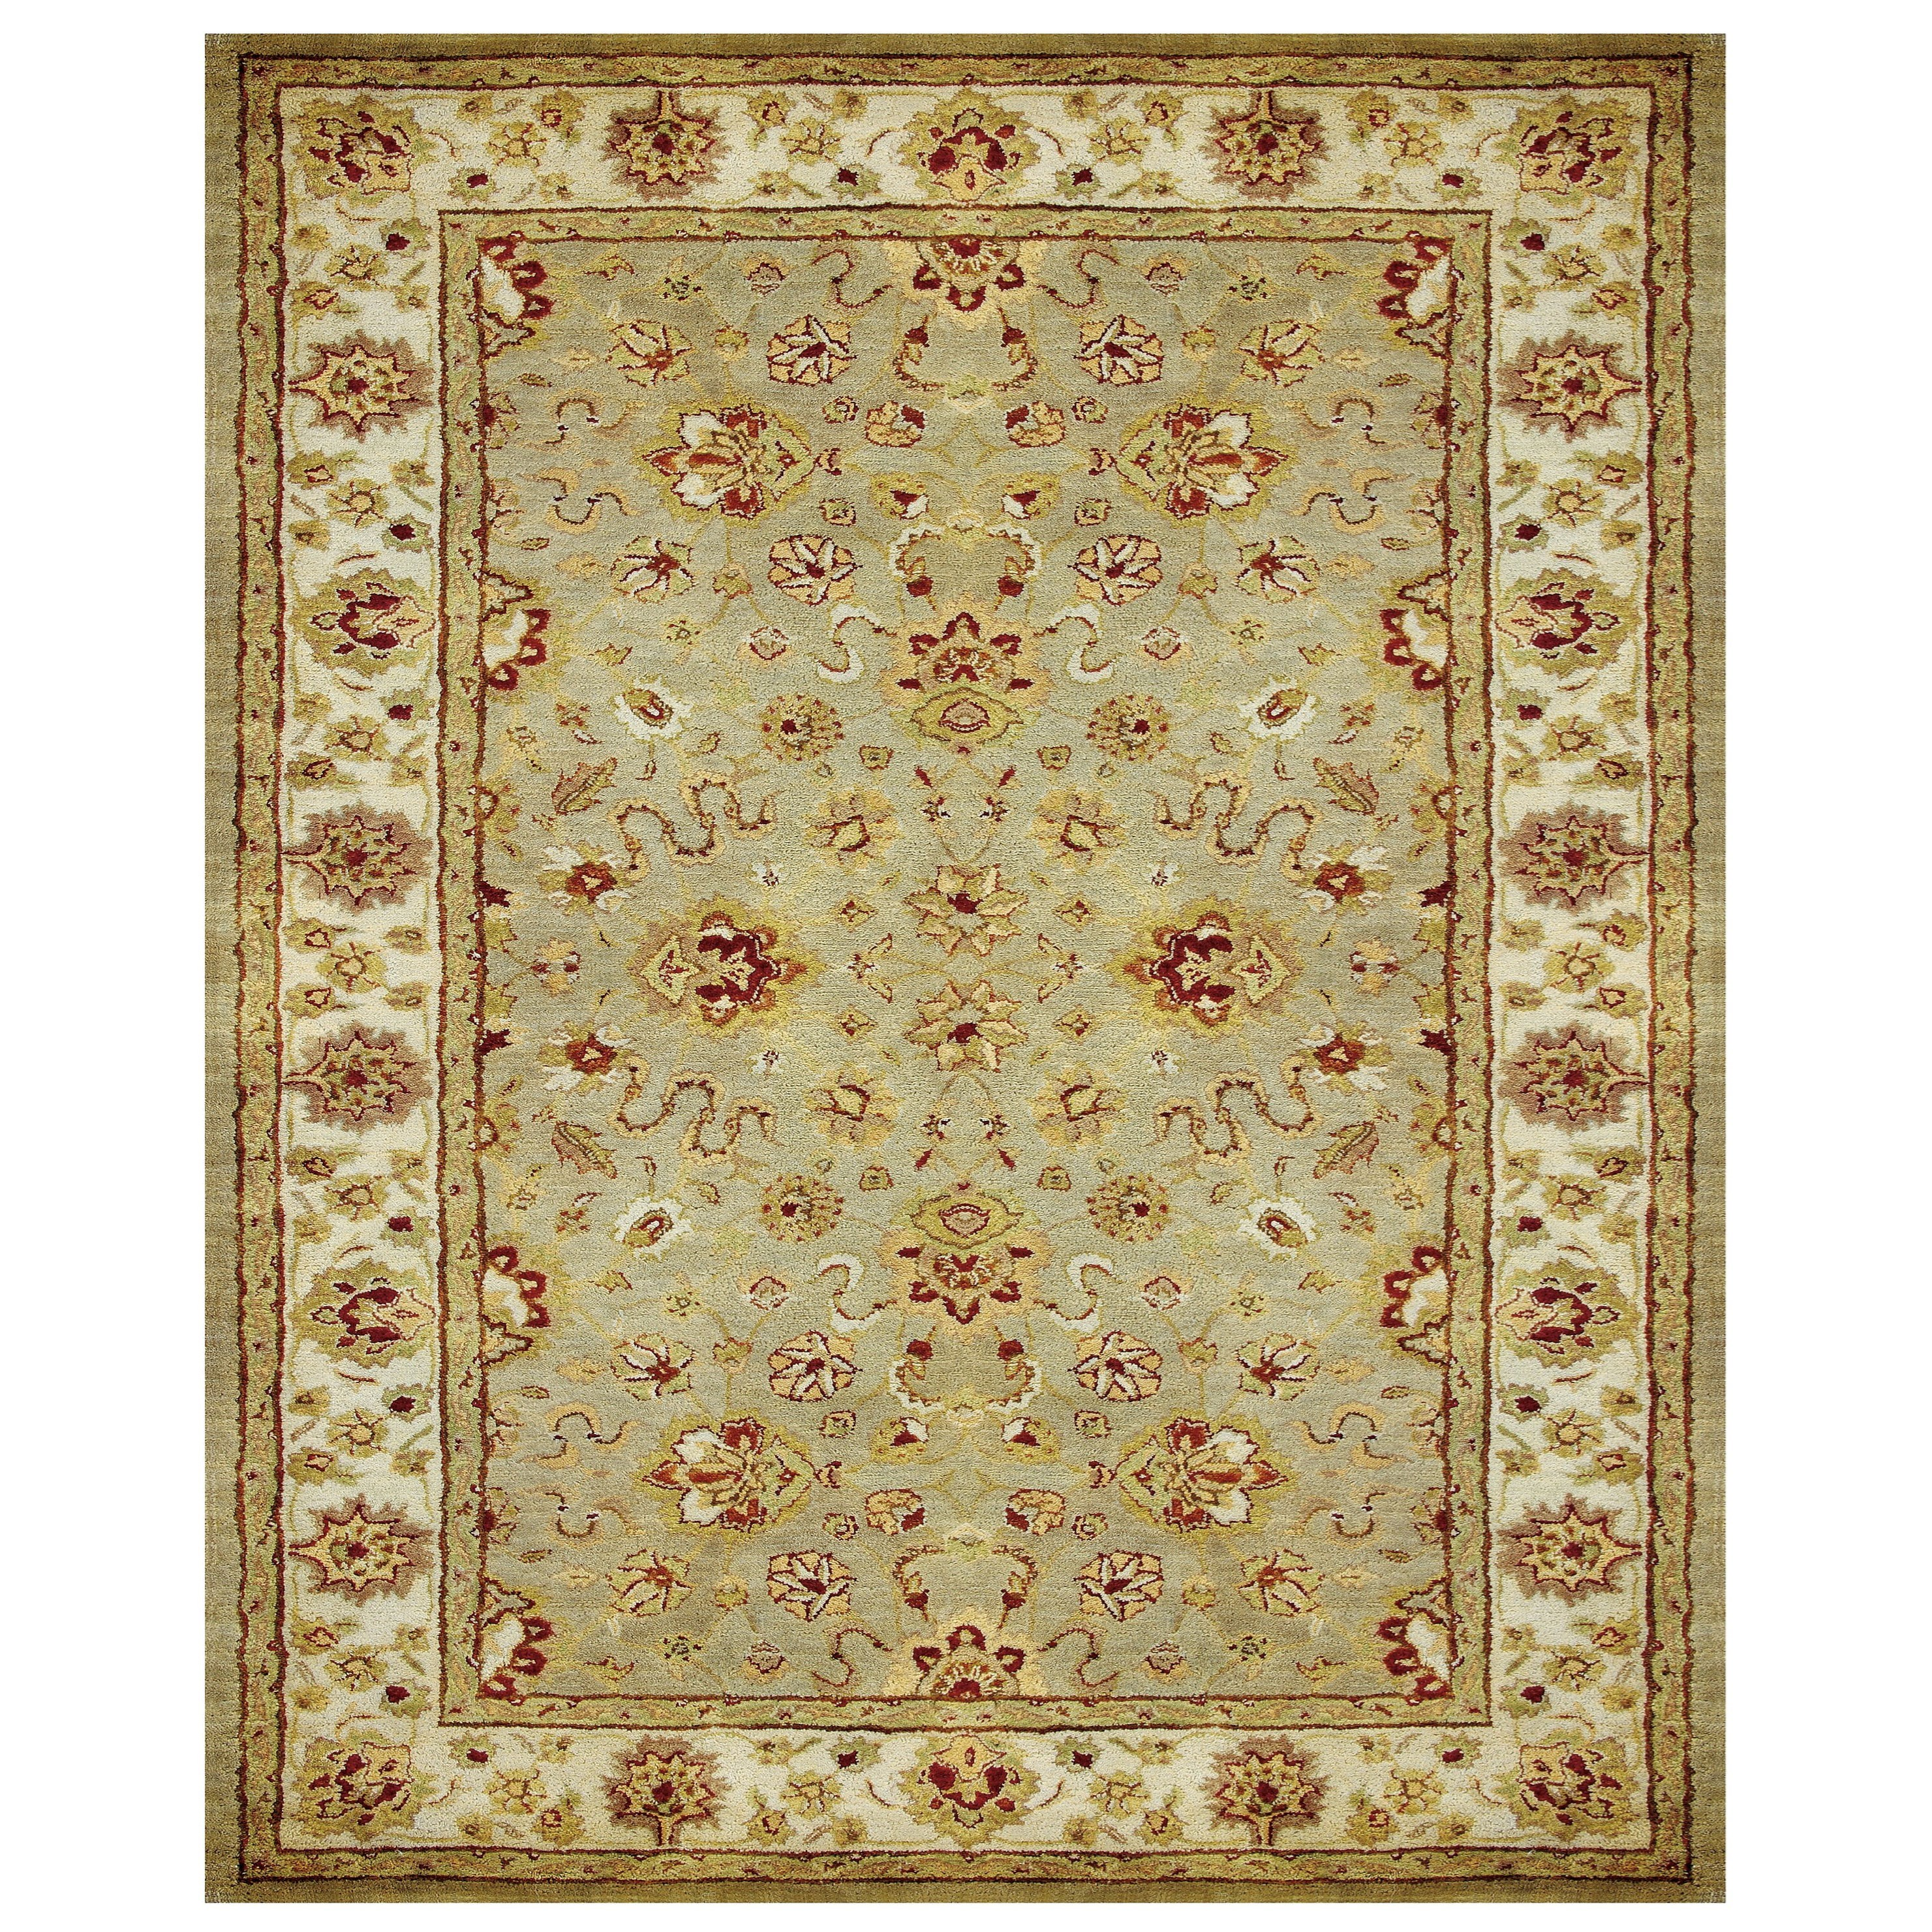 "Alexandra Sage/Ivory 9'-3"" x 13' Area Rug by Feizy Rugs at Sprintz Furniture"